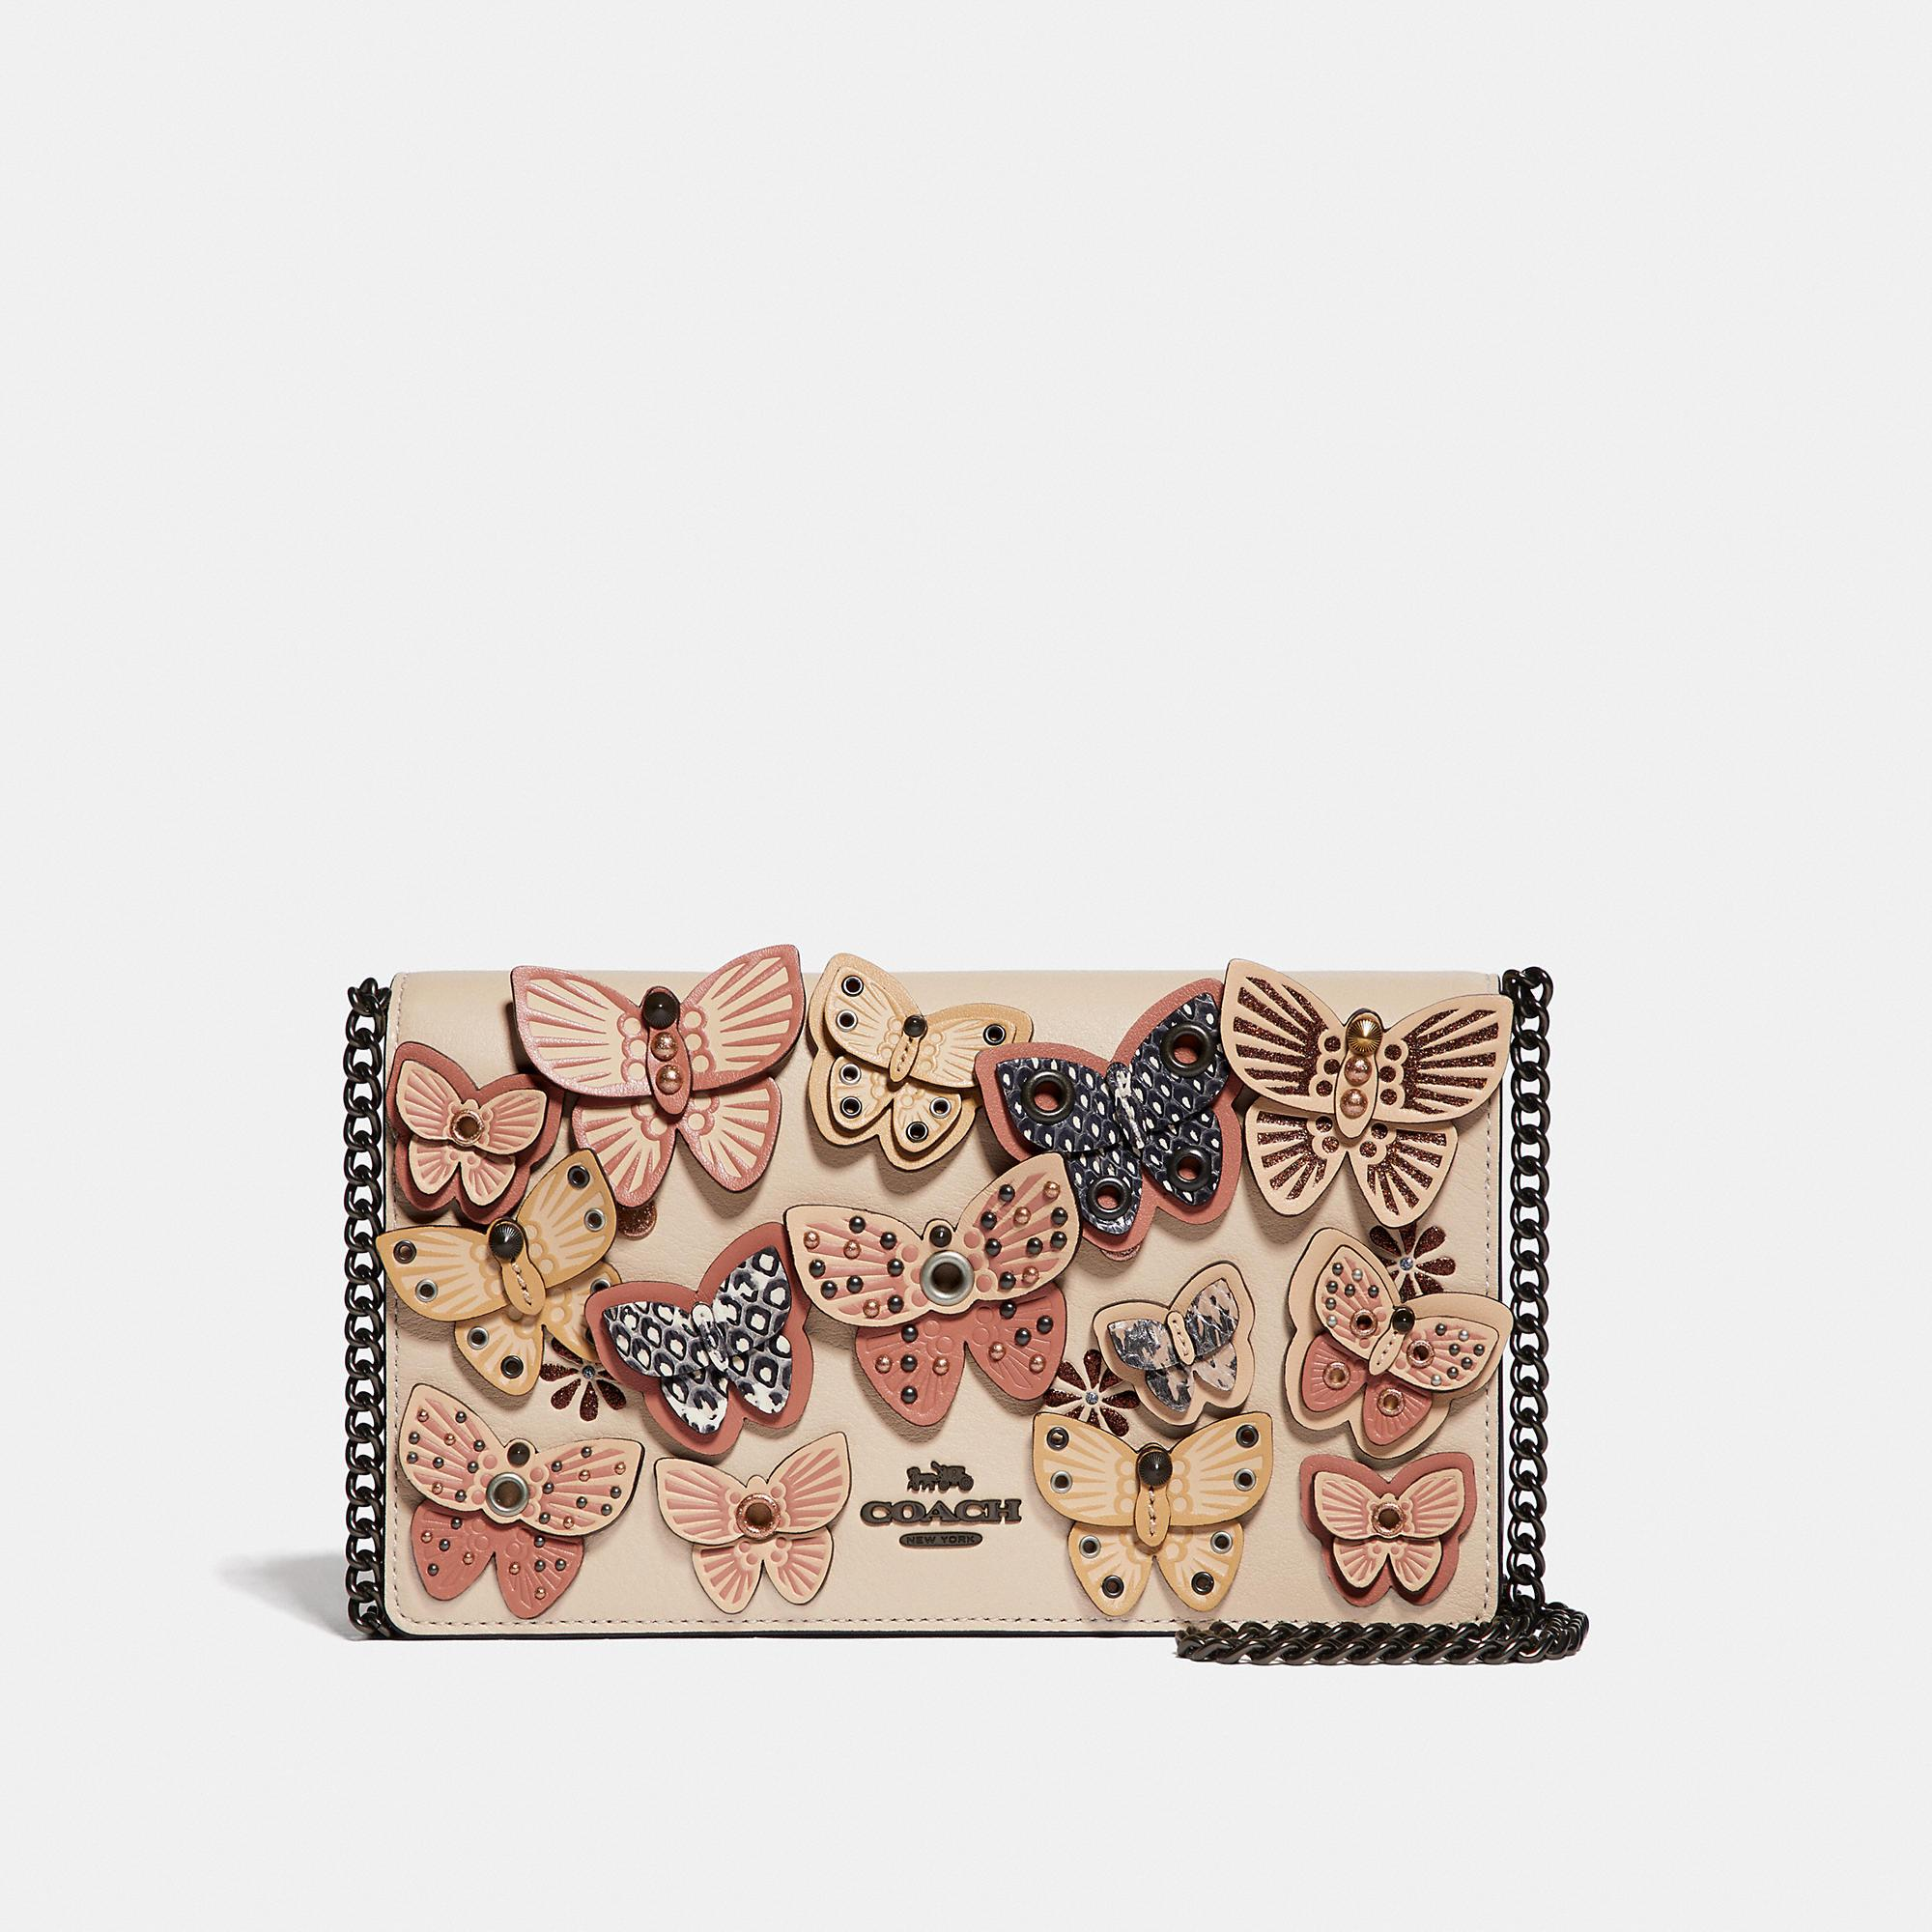 Lyst - COACH Callie Foldover Chain Clutch With Ombre